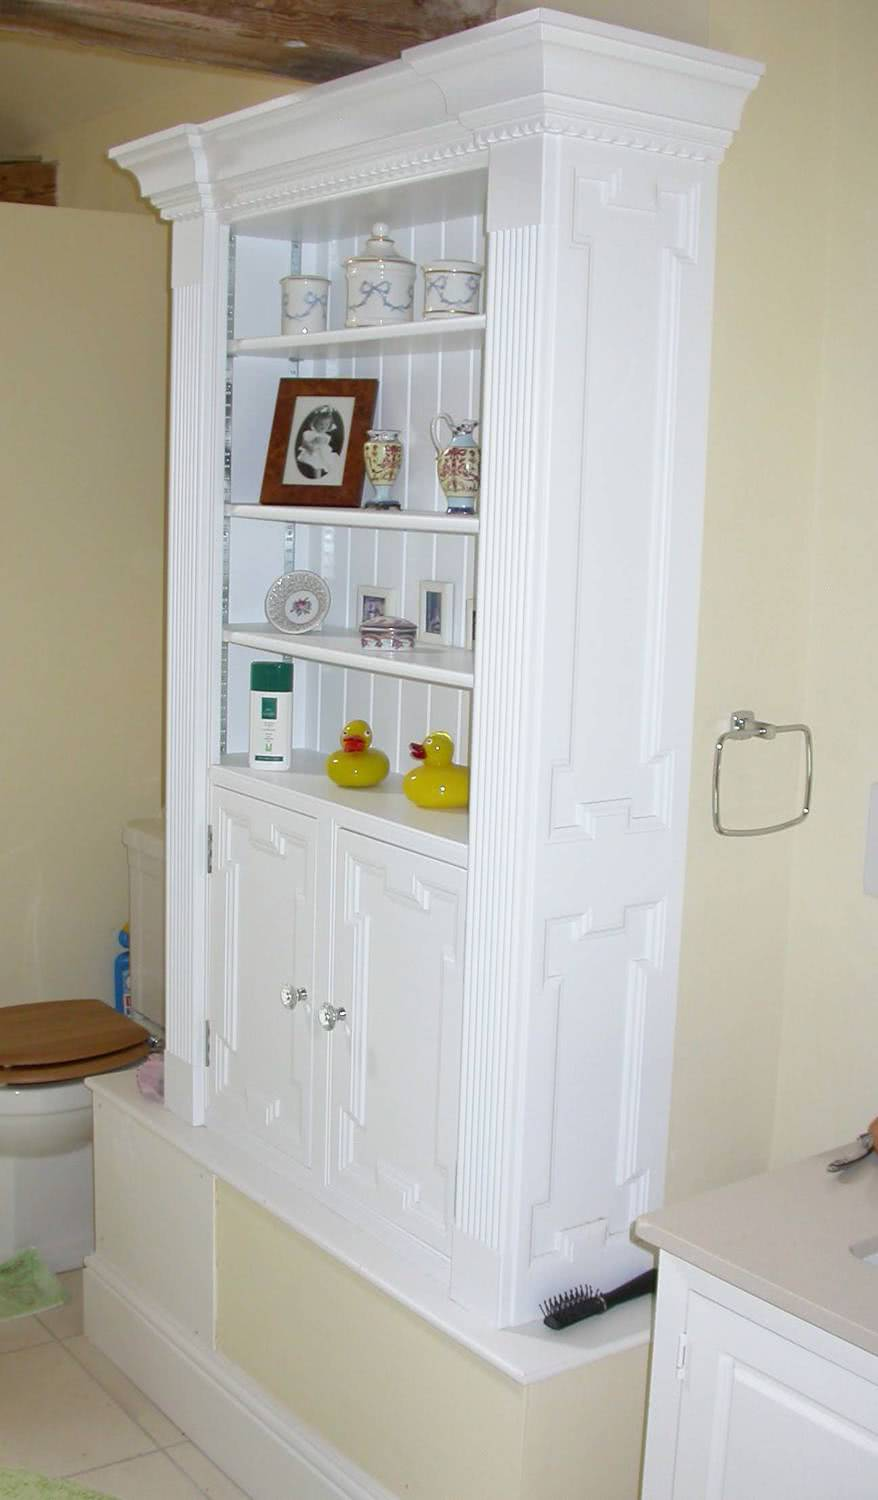 Side angle of fitted bathroom cabinets with open shelves painted MDF